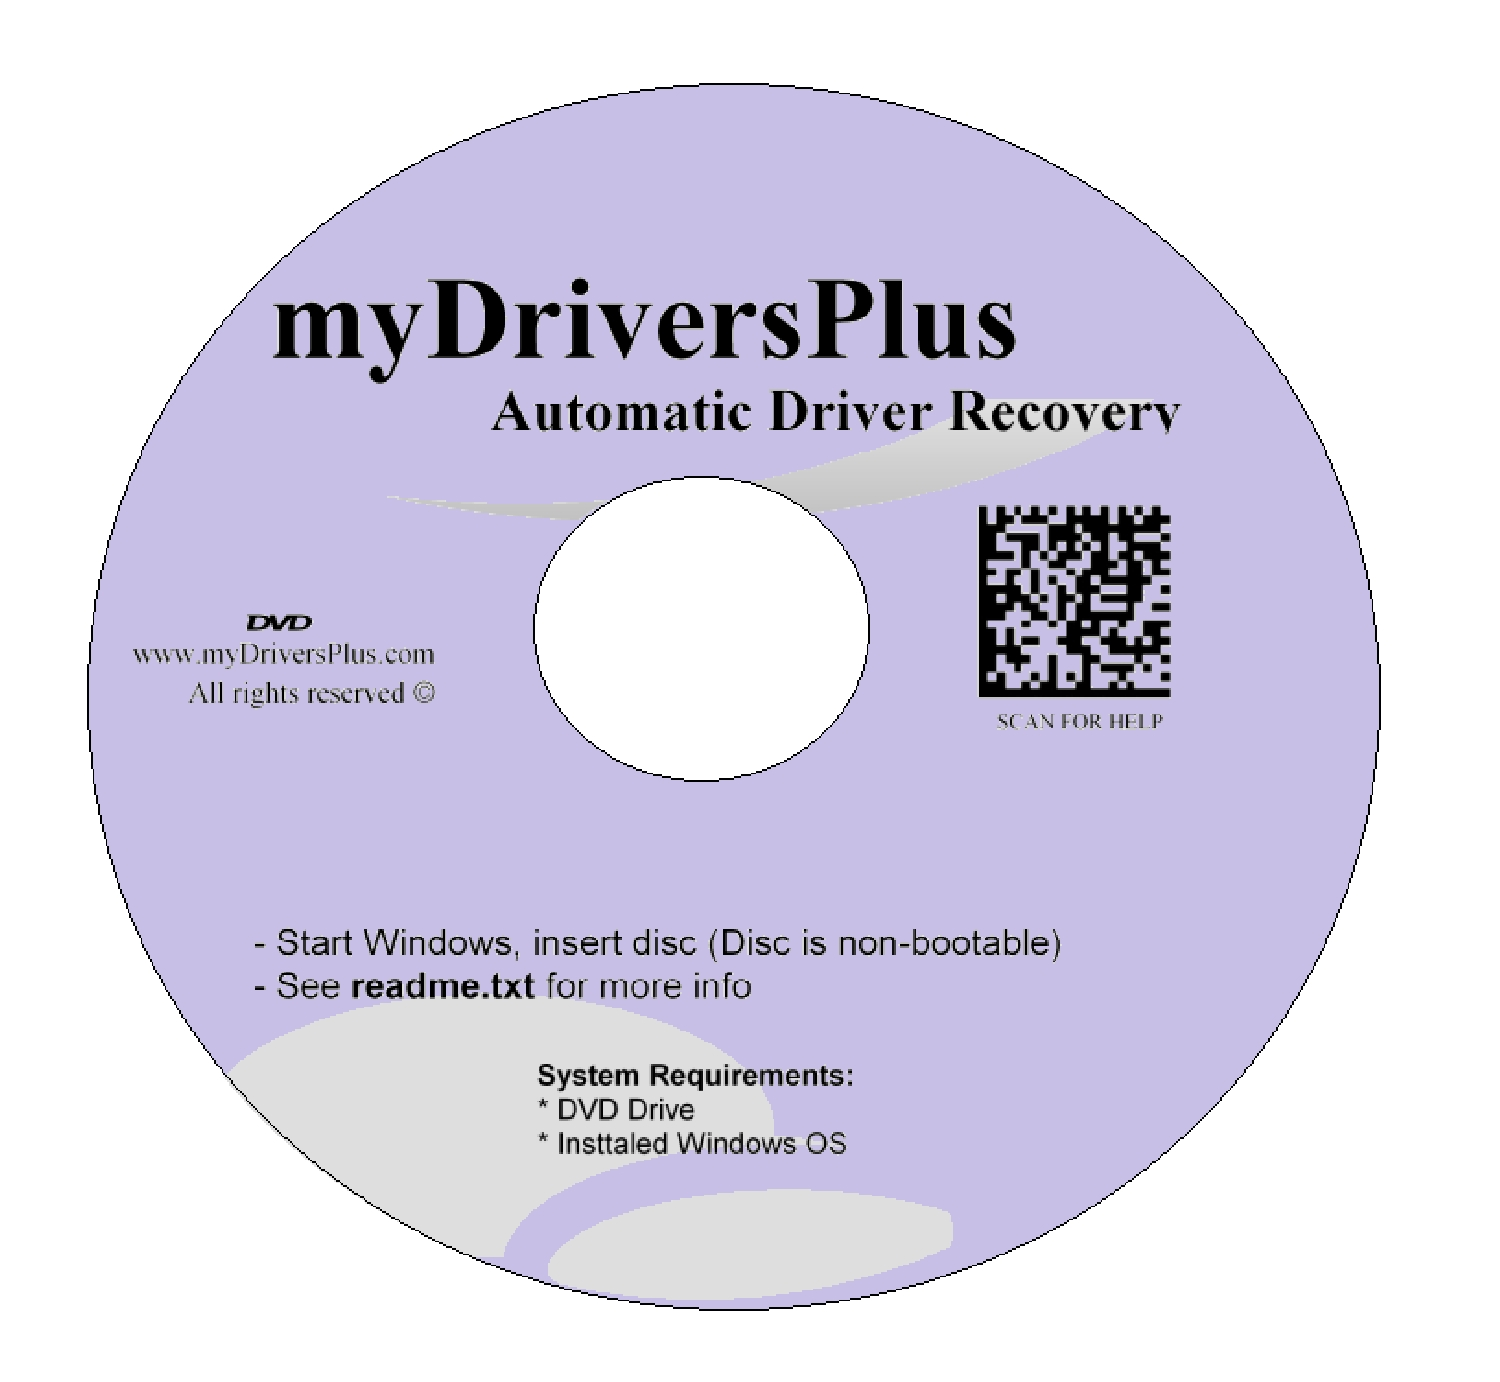 HP Pavilion DV3-2231TX Drivers Recovery Restore Resource Utilities Software with Automatic One-Click Installer Unattended for Internet, Wi-Fi, Ethernet, Video, Sound, Audio, USB, Devices, Chipset ...